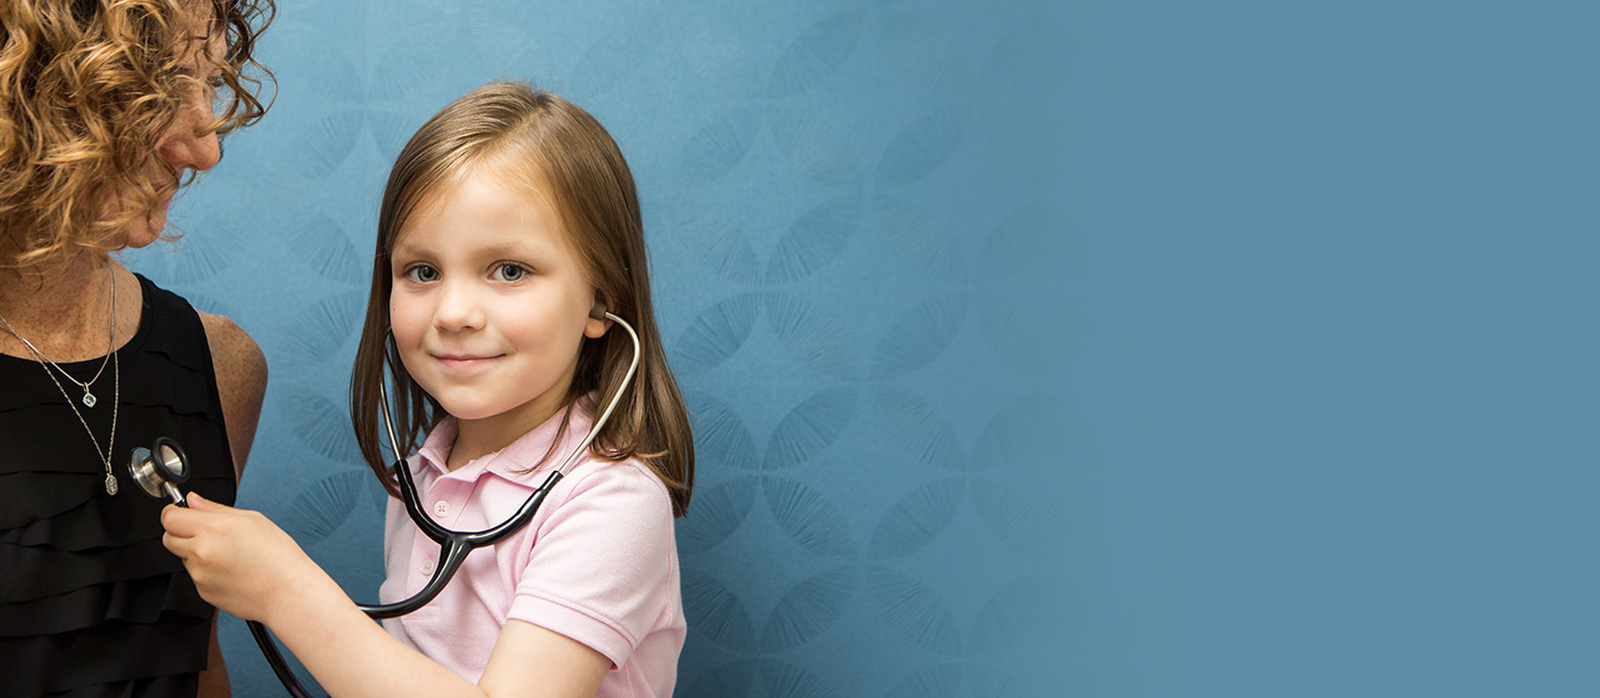 Routine Well Child Visits and Immunizations